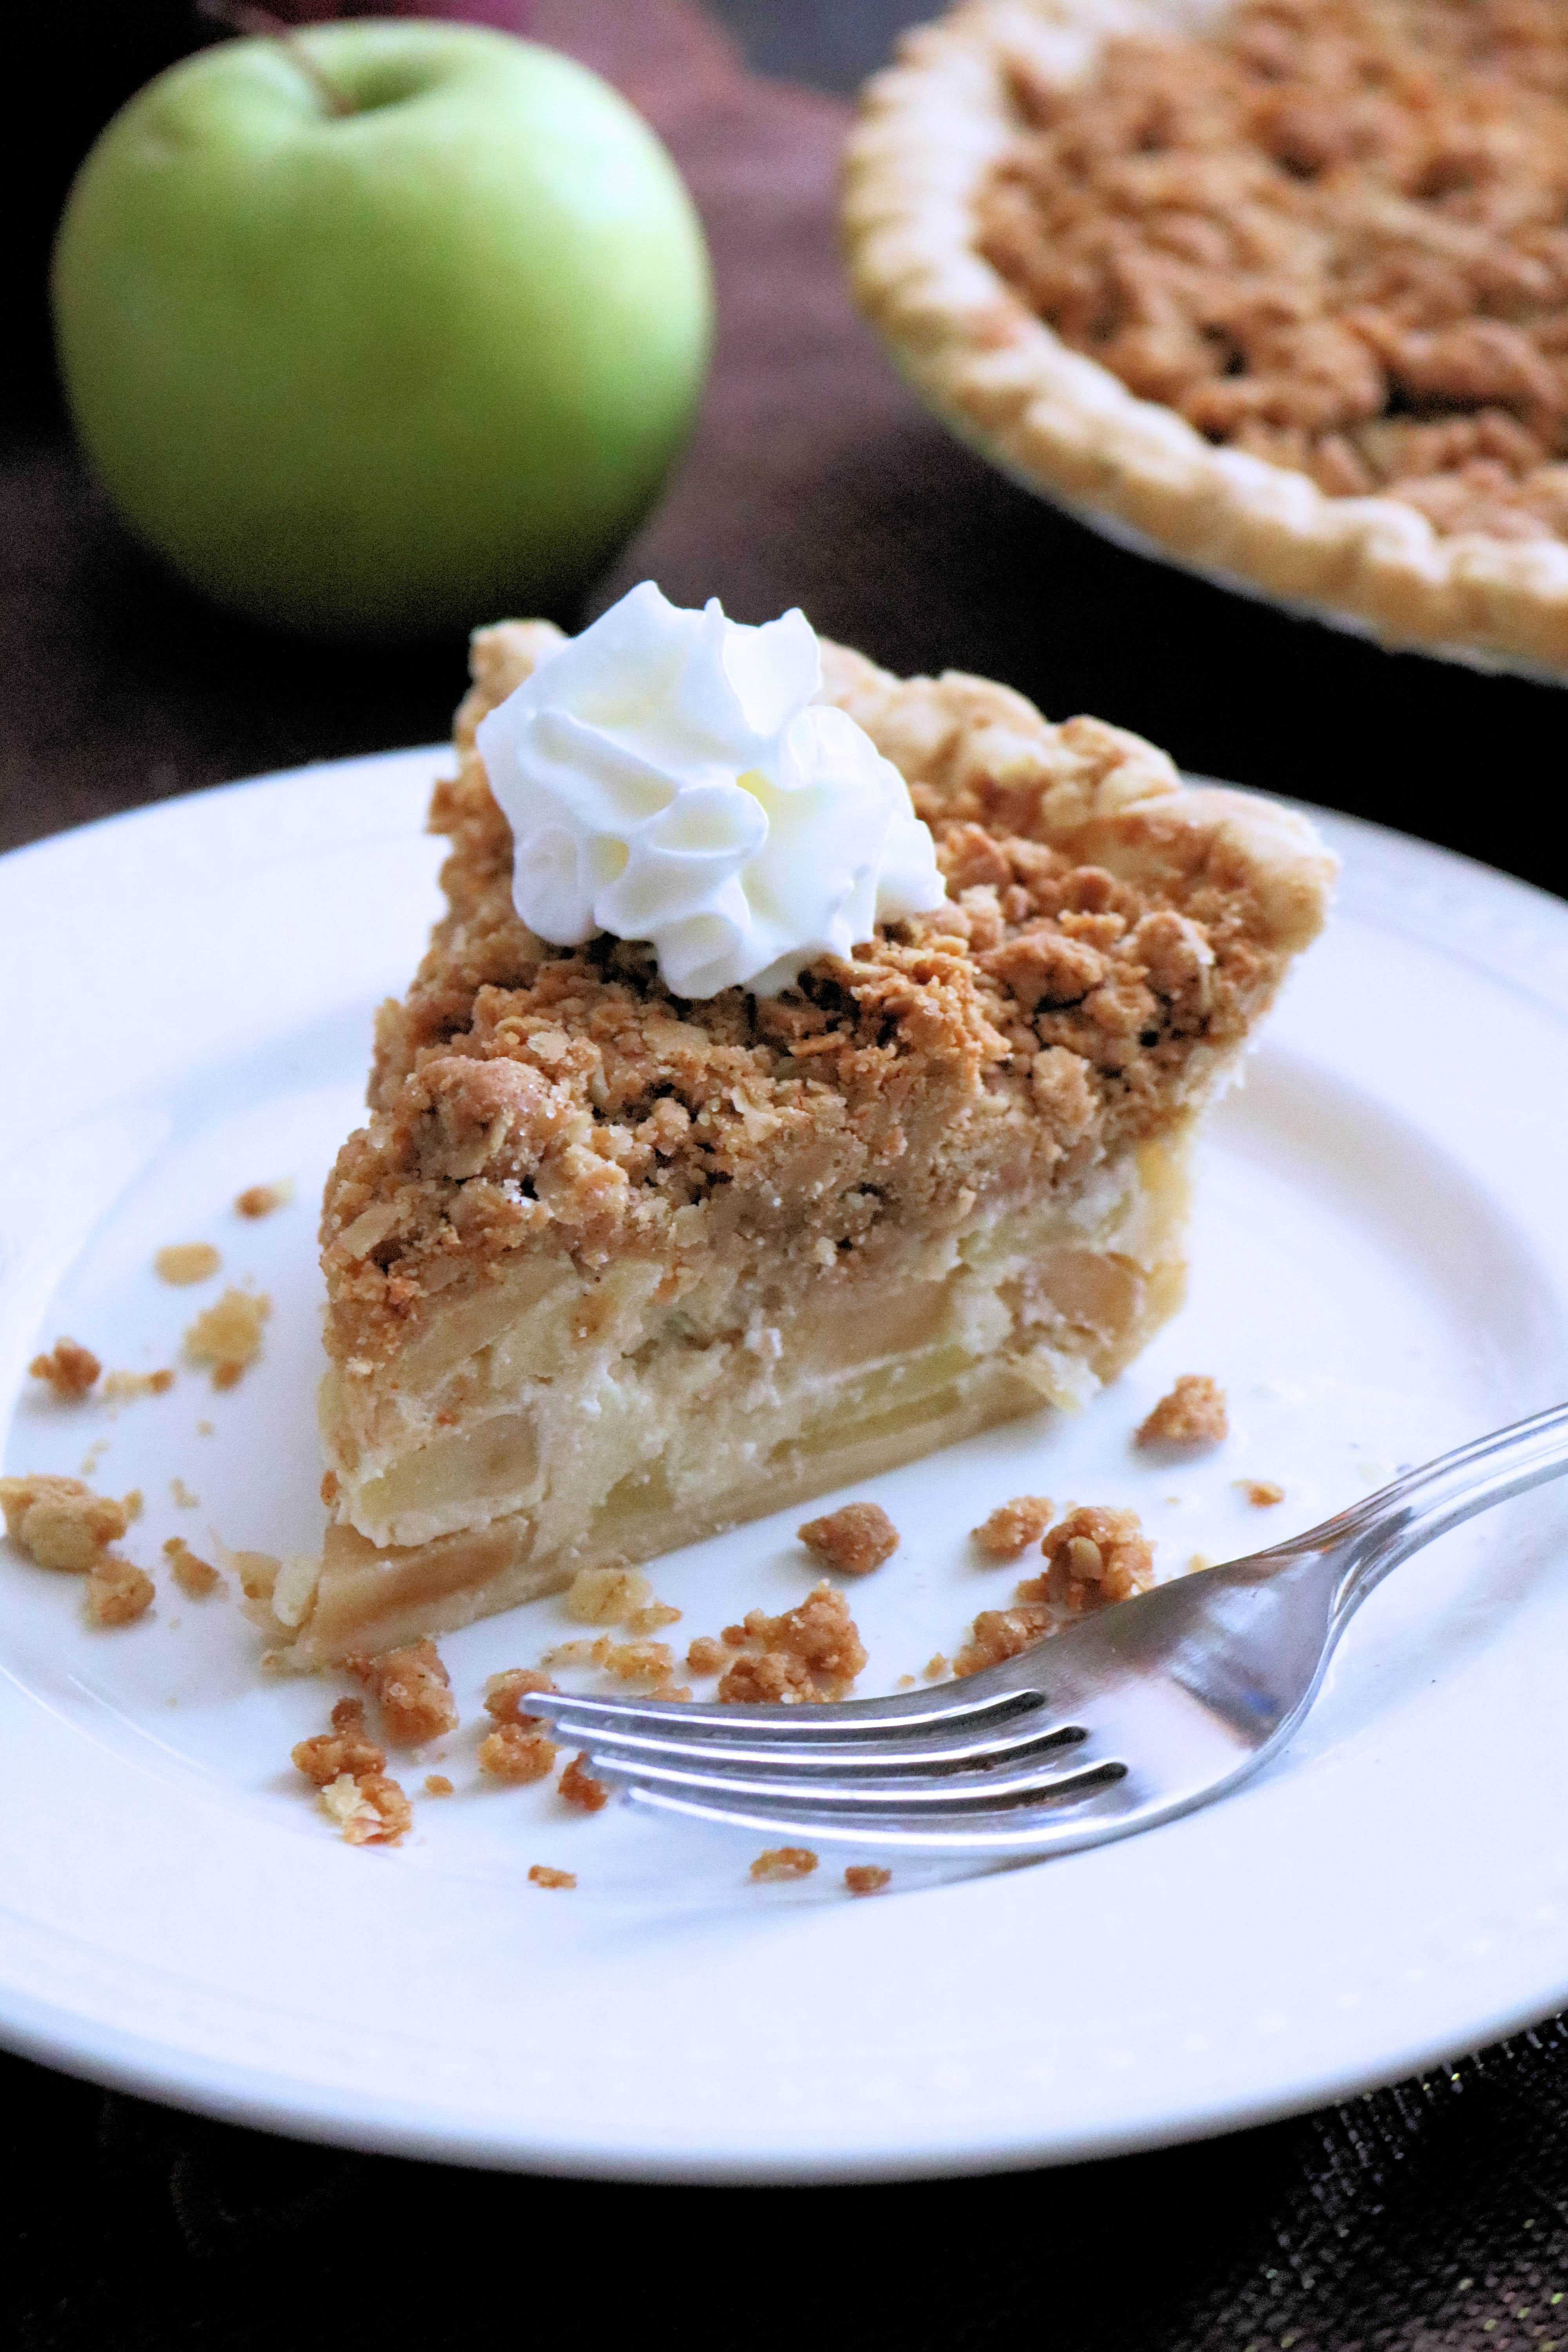 Looking for the best crumb apple pie recipe? Featuring sweet and tart apples and a delicious peanut butter and oats crumble topping this Peanut Butter Apple Crumb Pie is the best apple crumb pie you'll ever eat!#applepie #applepierecipe